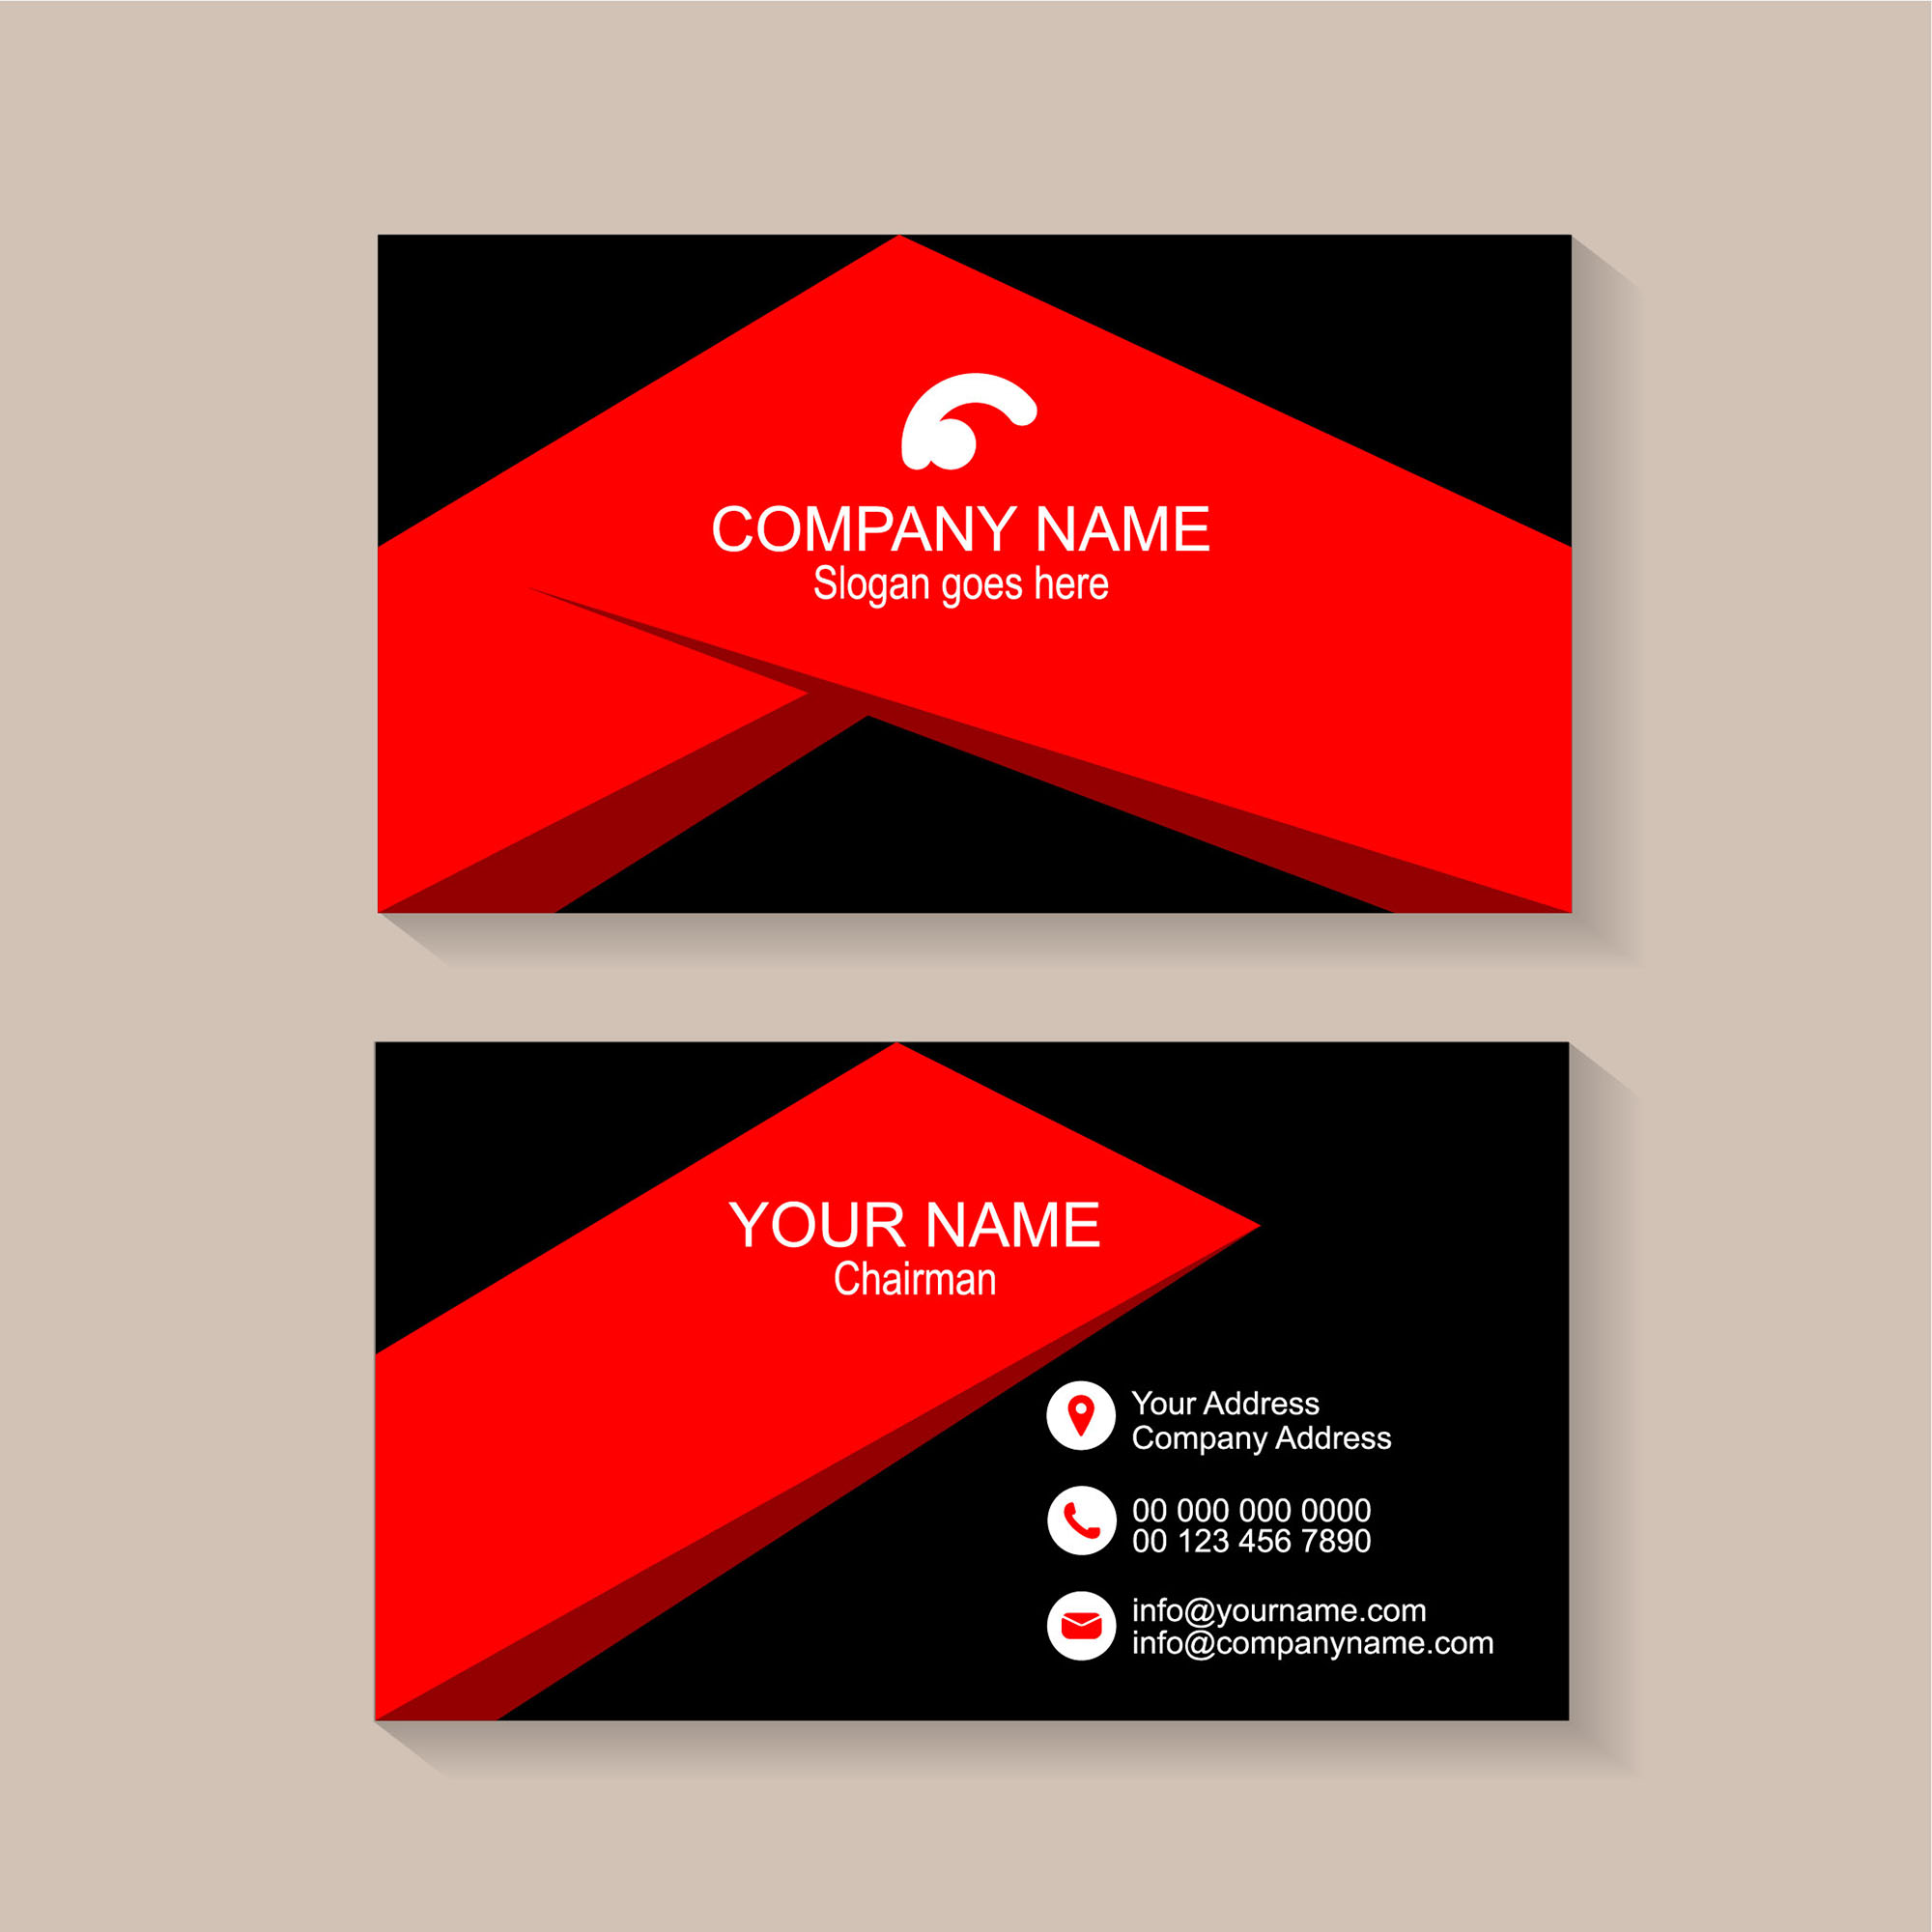 Business card template design free download wisxi business card business cards business card design business card template design templates fbccfo Images